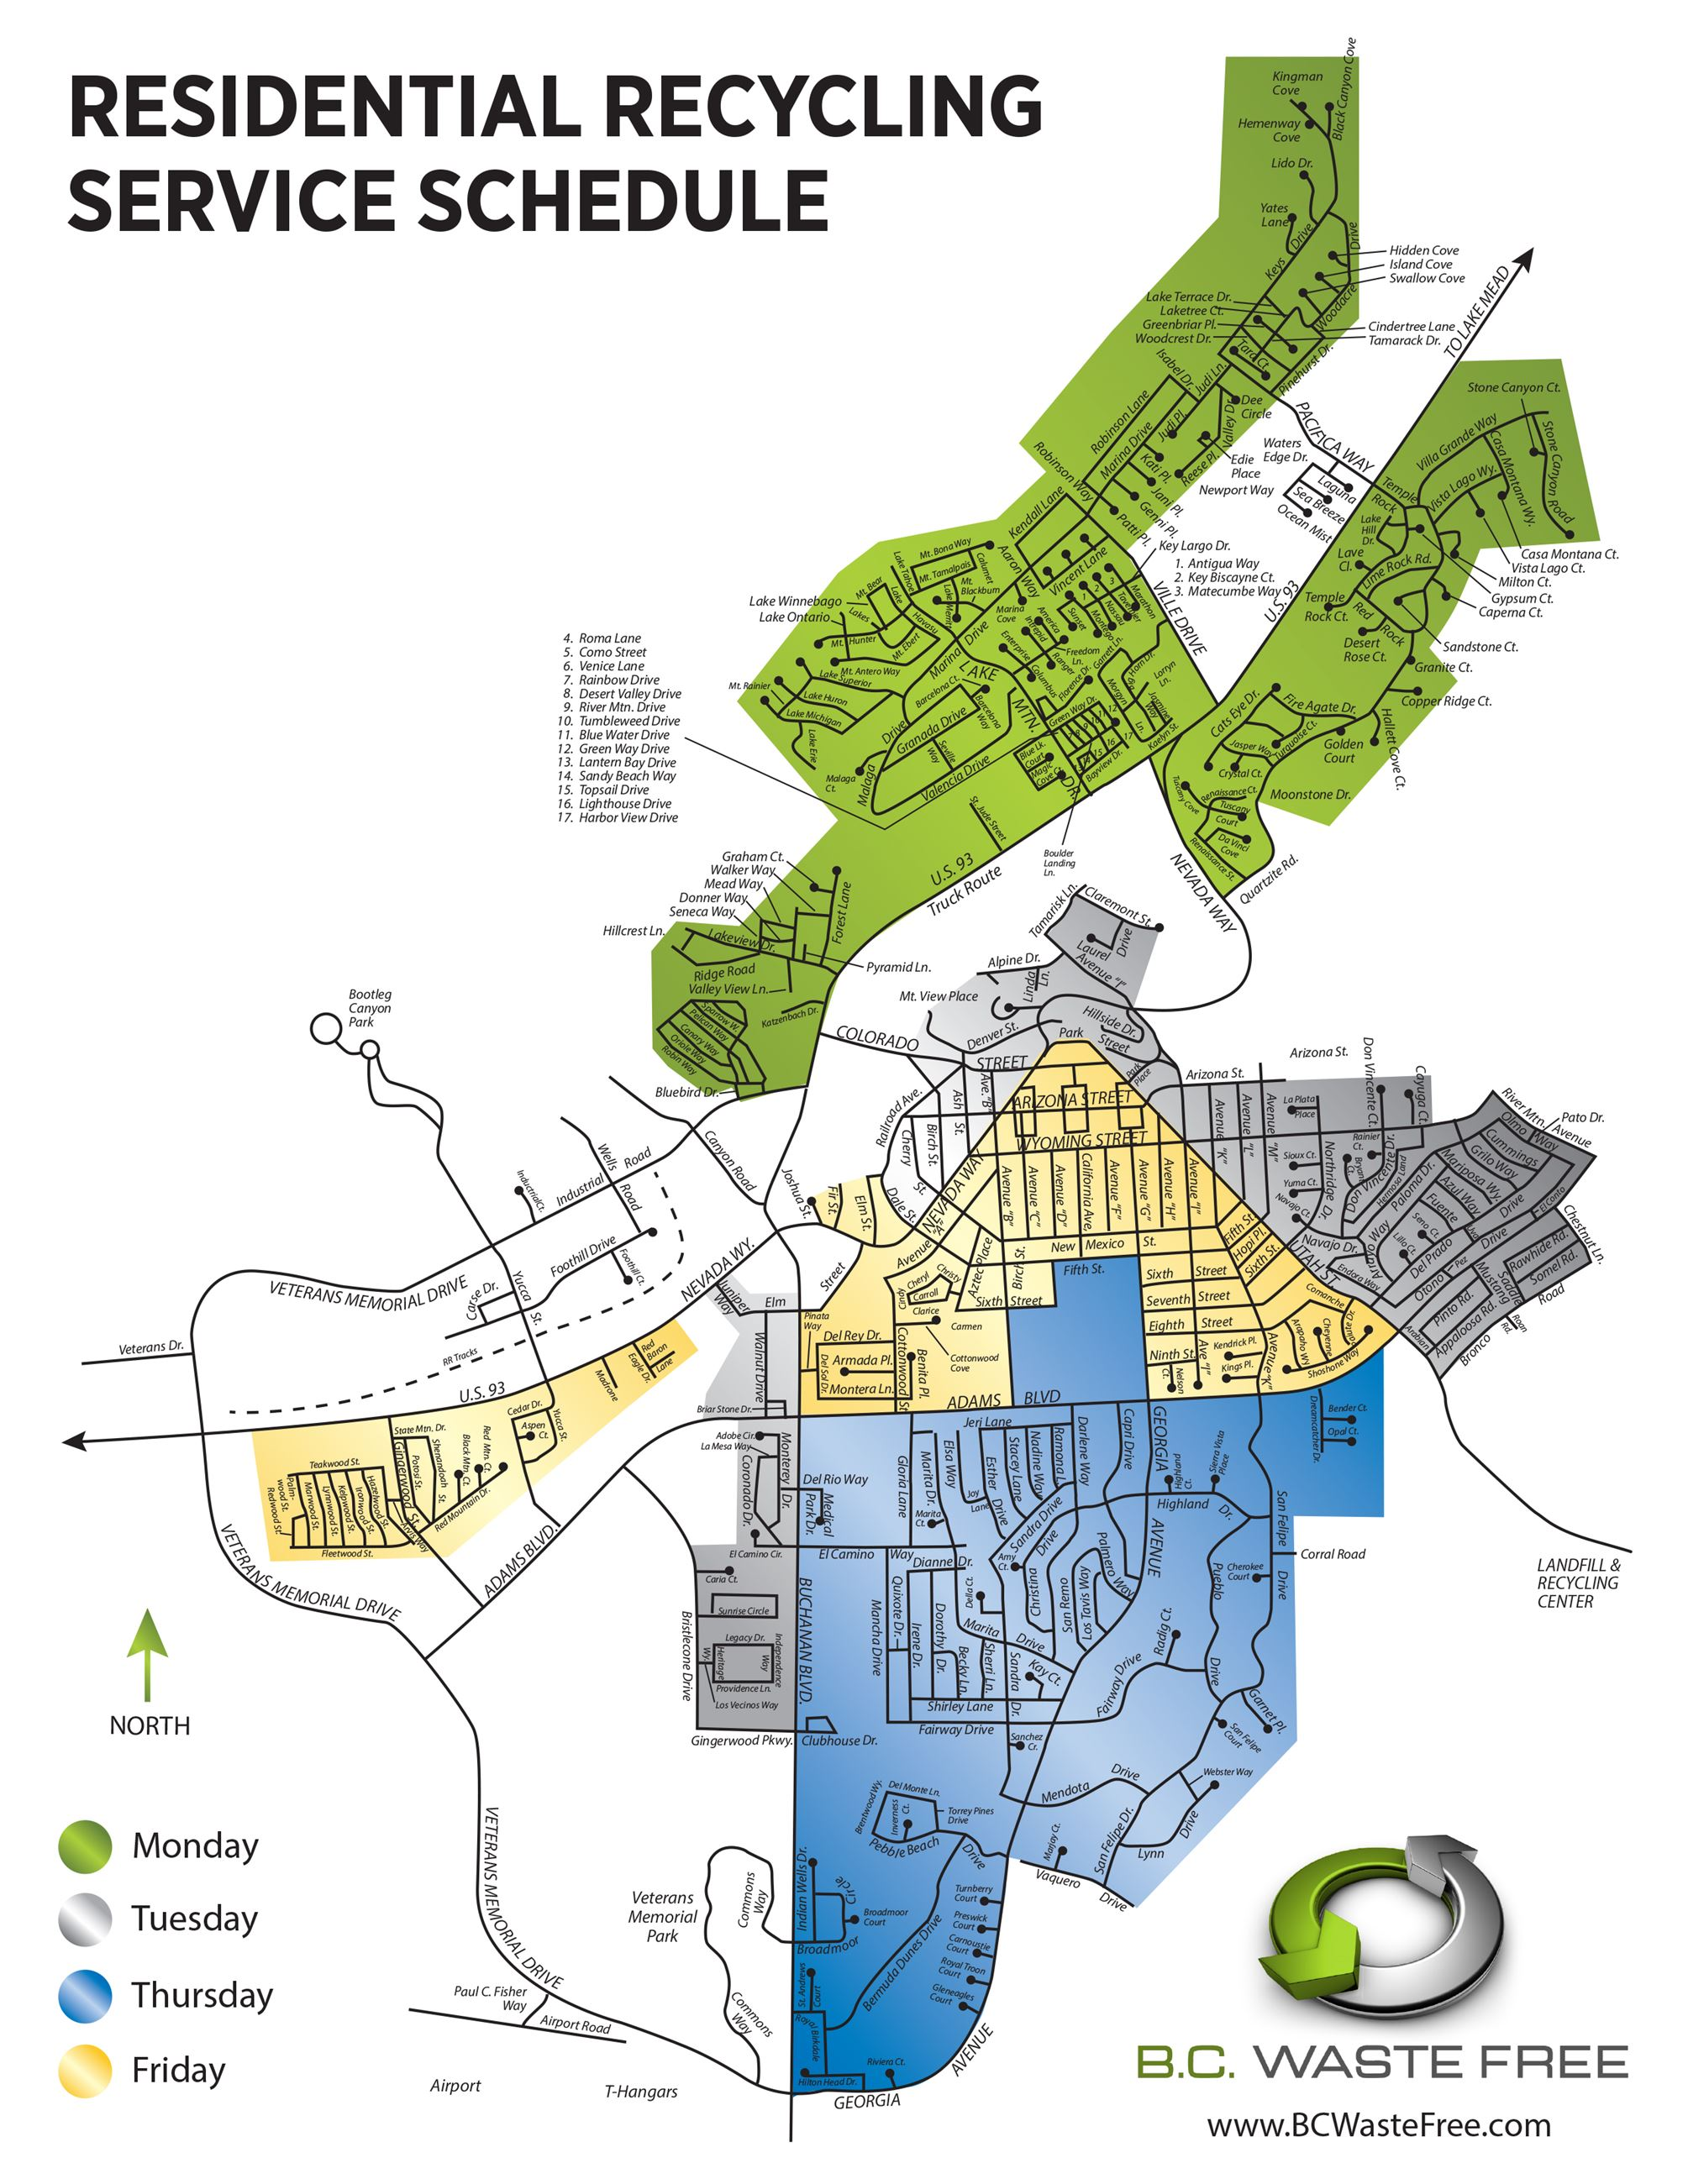 Recycling Service Schedule Map